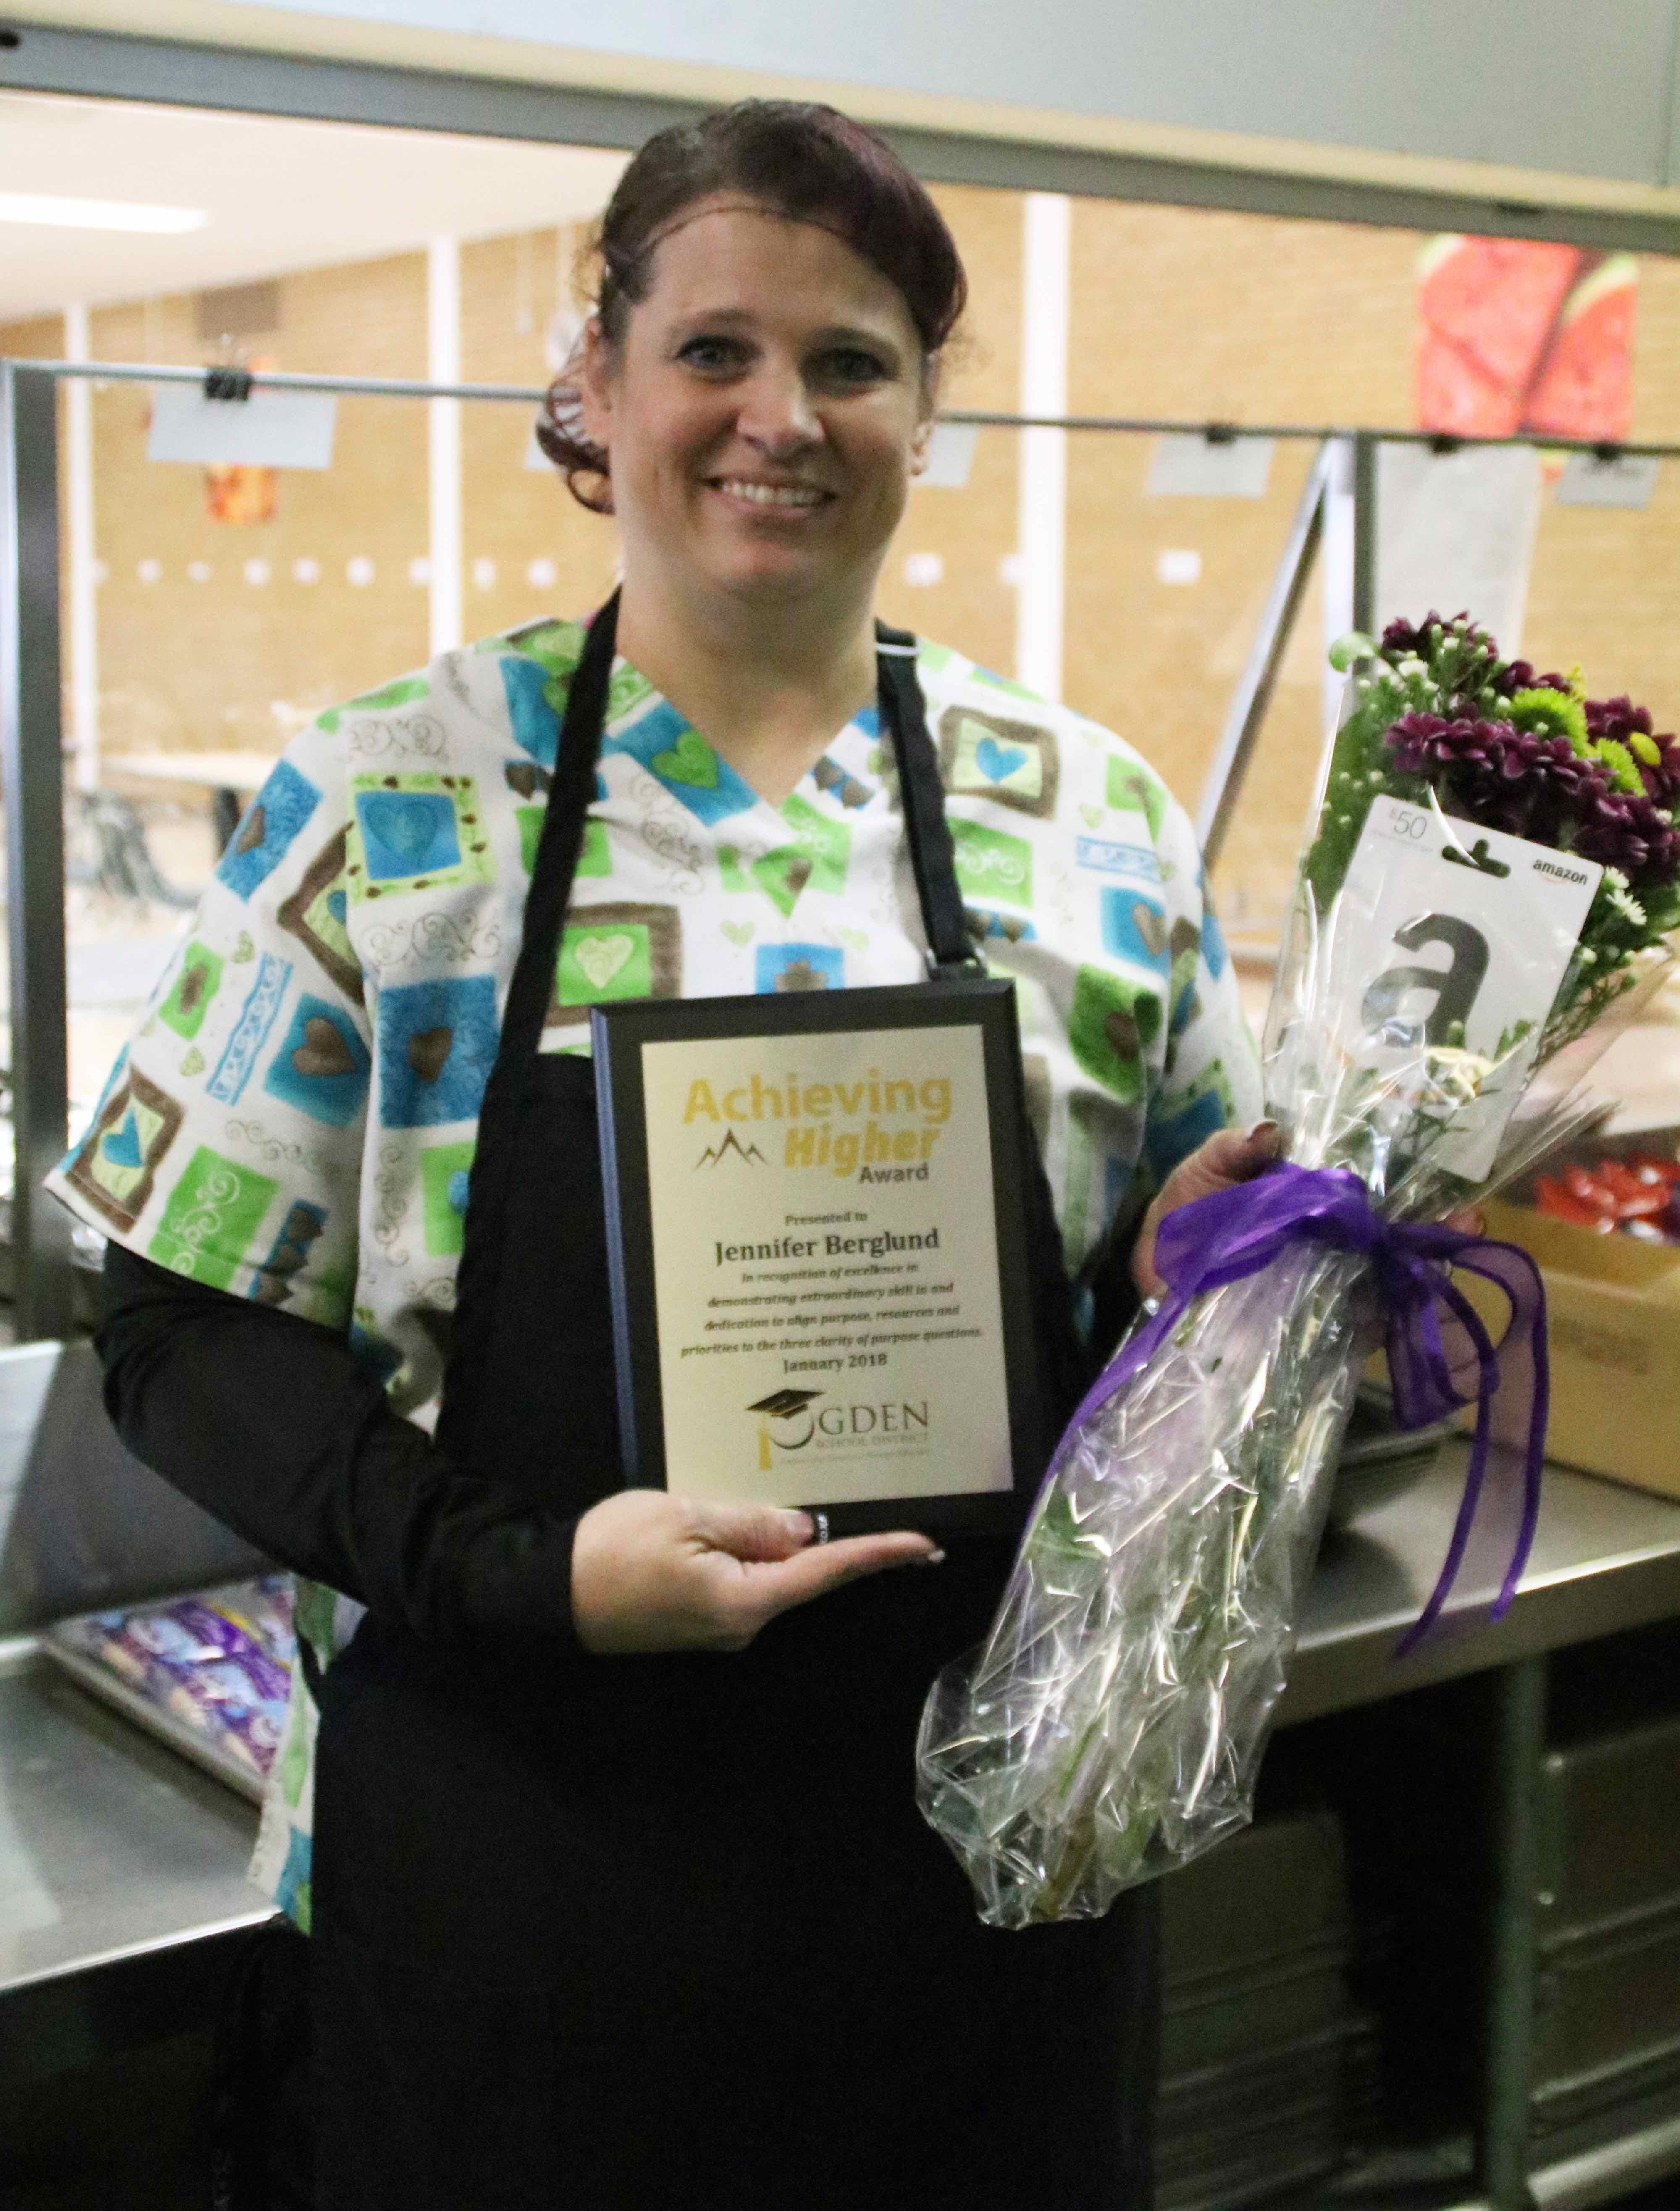 Congratulations to Jennifer Berglund, Highland Child Nutrition manager, for being honored with Ogden School District's January Achieving Higher Award!